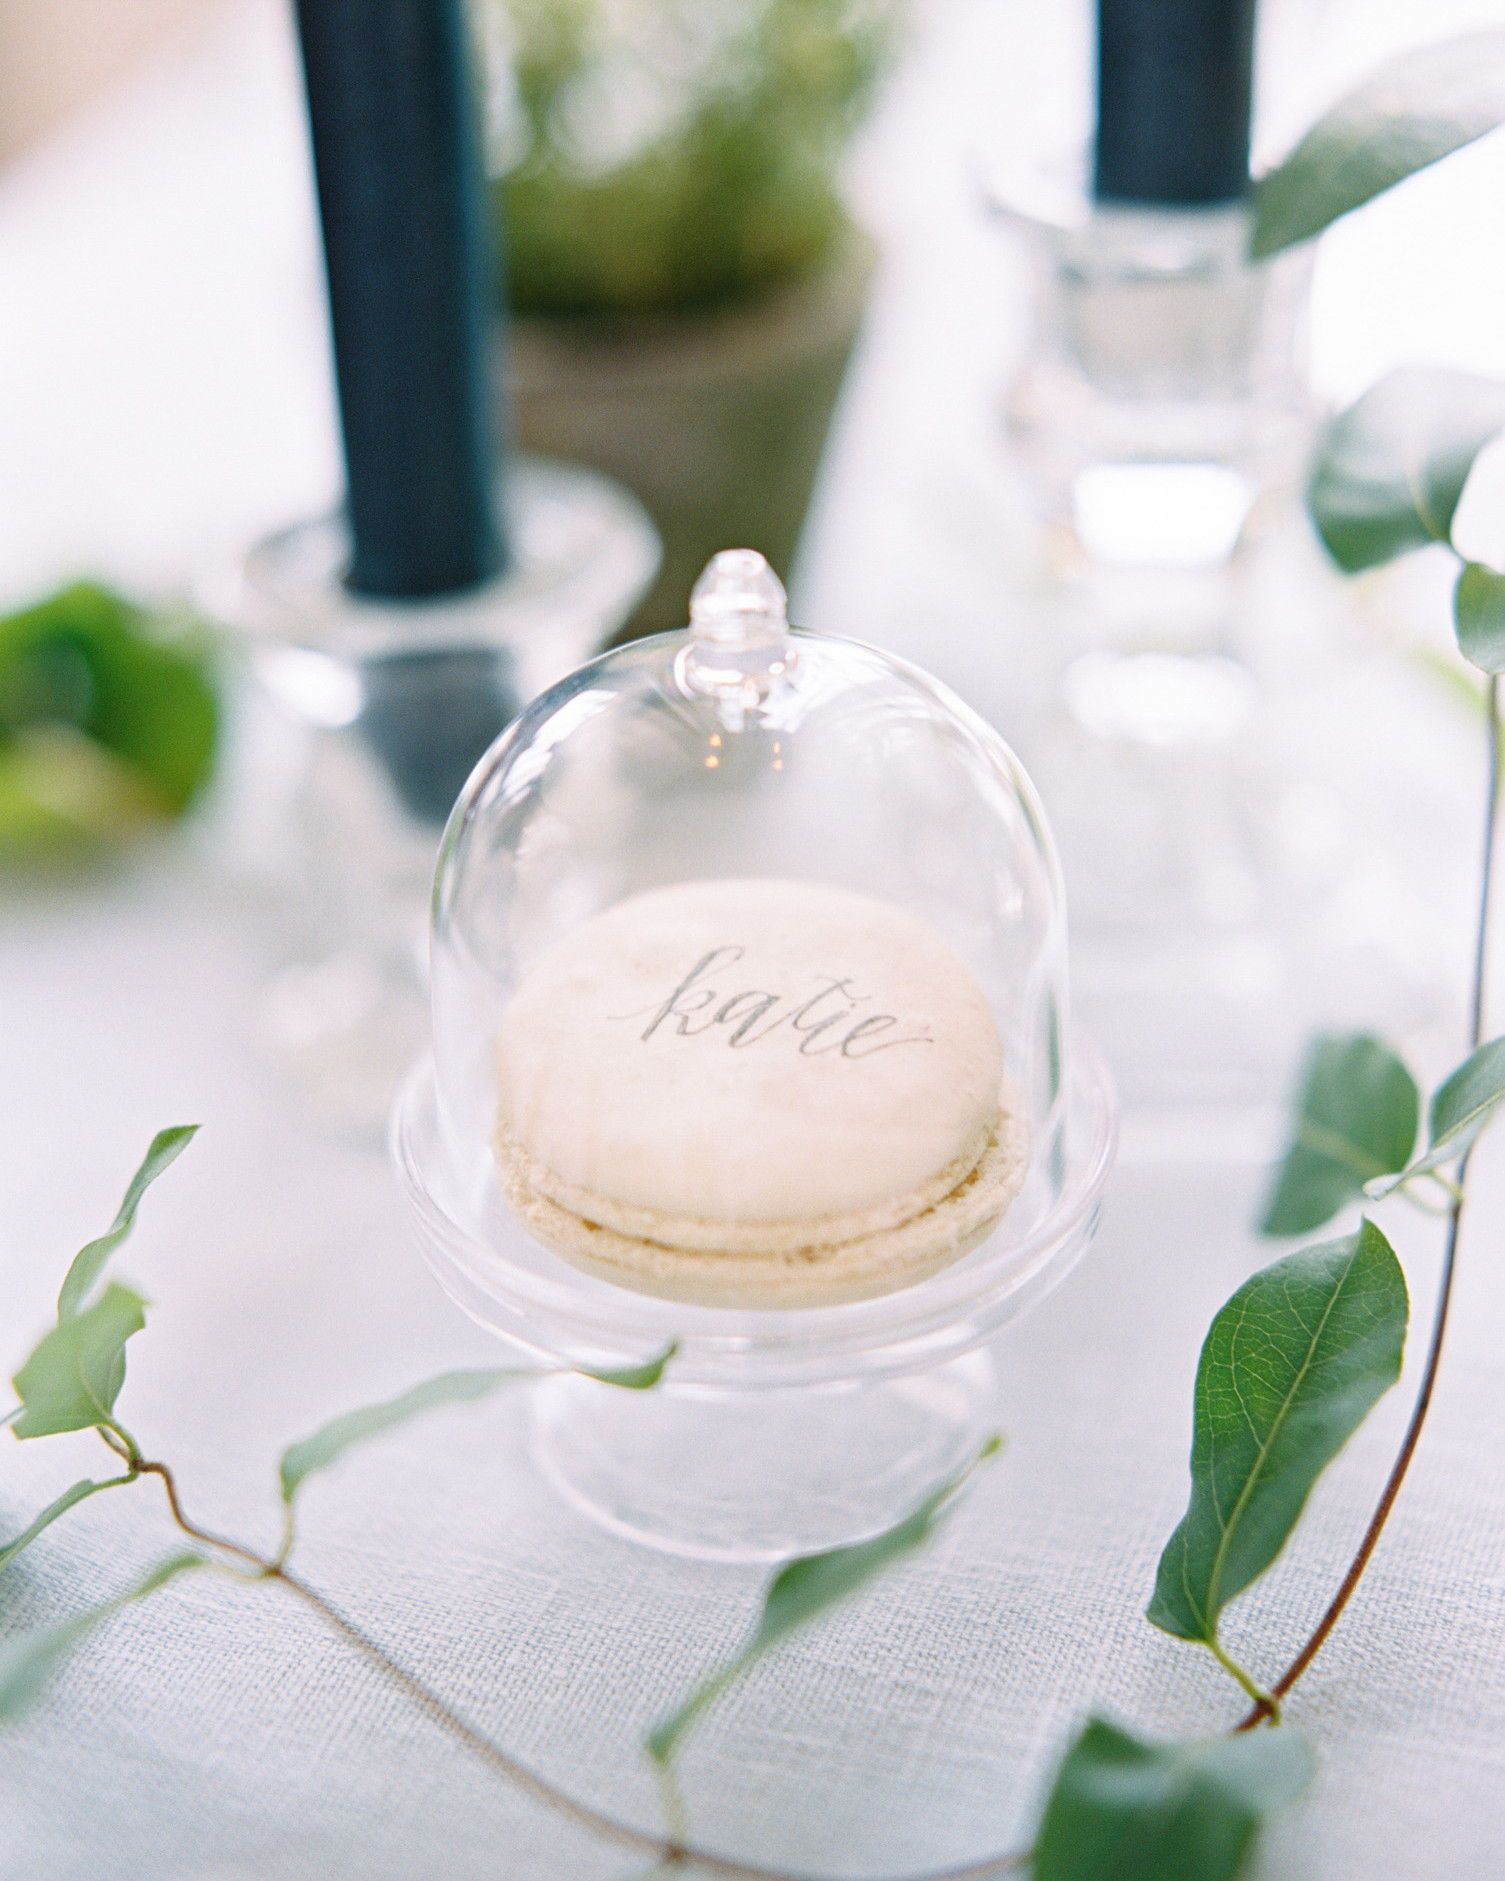 28 Paper Place Card Alternatives That Your Guests Won't Expect On the fence about what to choose for name cards? We suggest drawing inspiration from your wedding's theme, locale, and even the season. | Martha Stewart Weddings - 28 Paper Place Card Alternatives That Your Guests Won't Expect